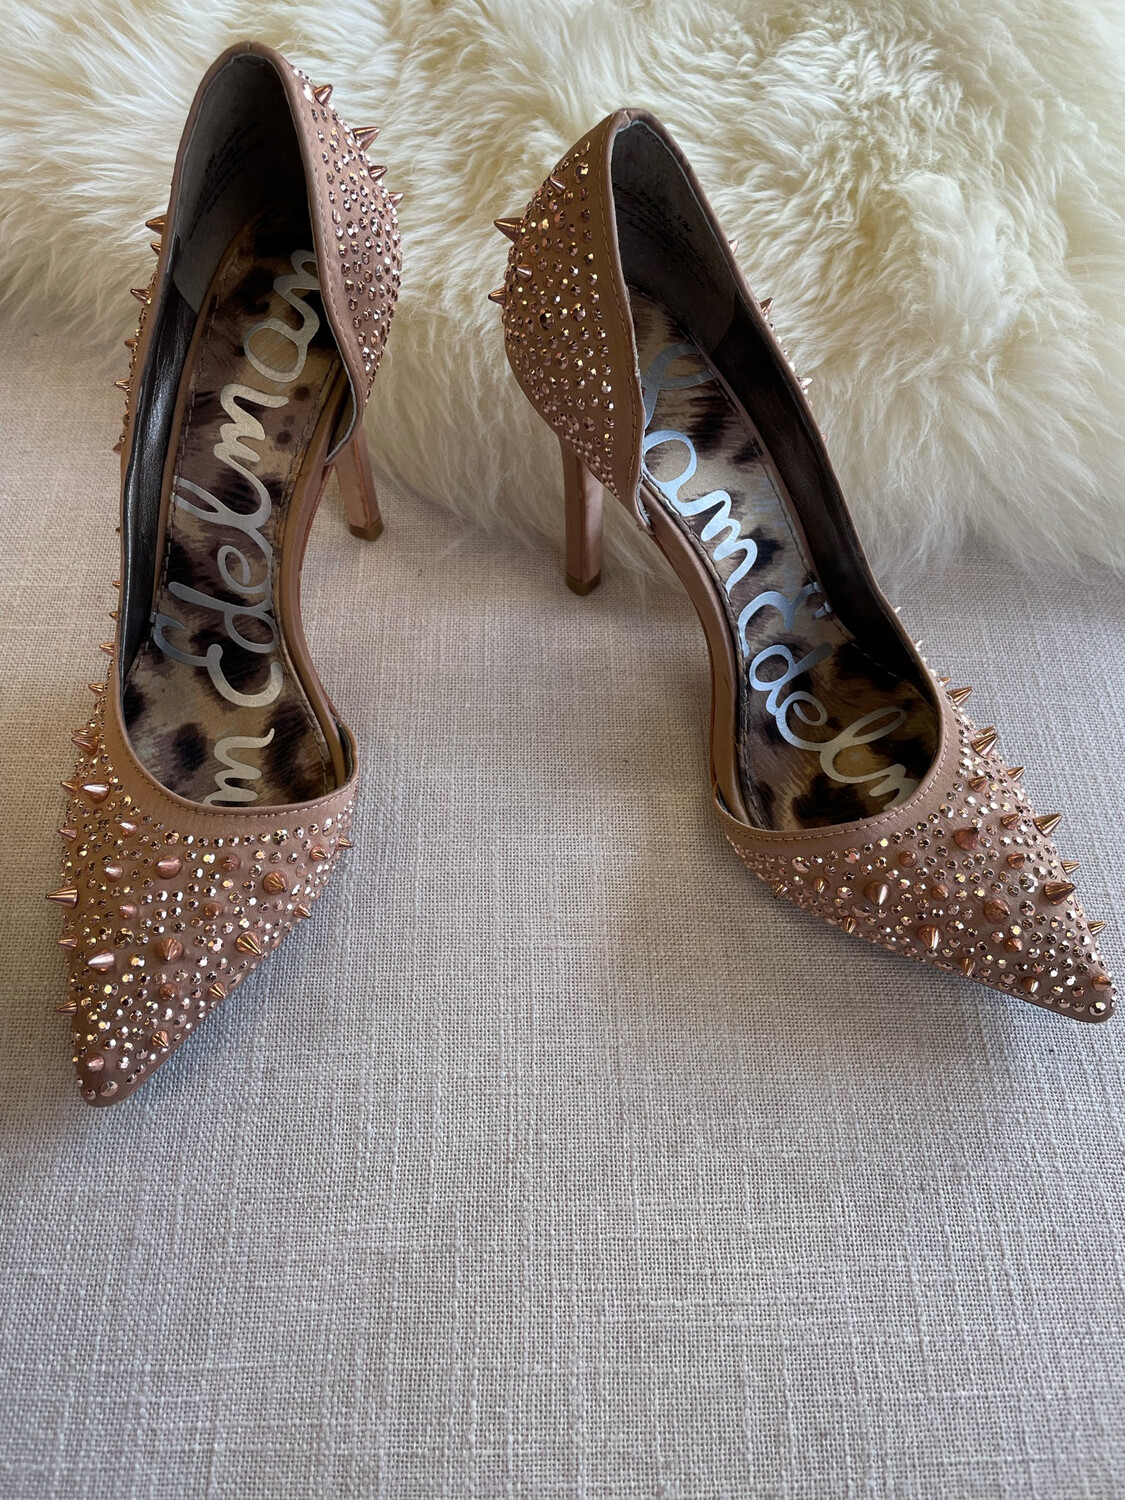 Sam Edelman Nude w/Rose Gold Spiked Heels & Studs - Size 5